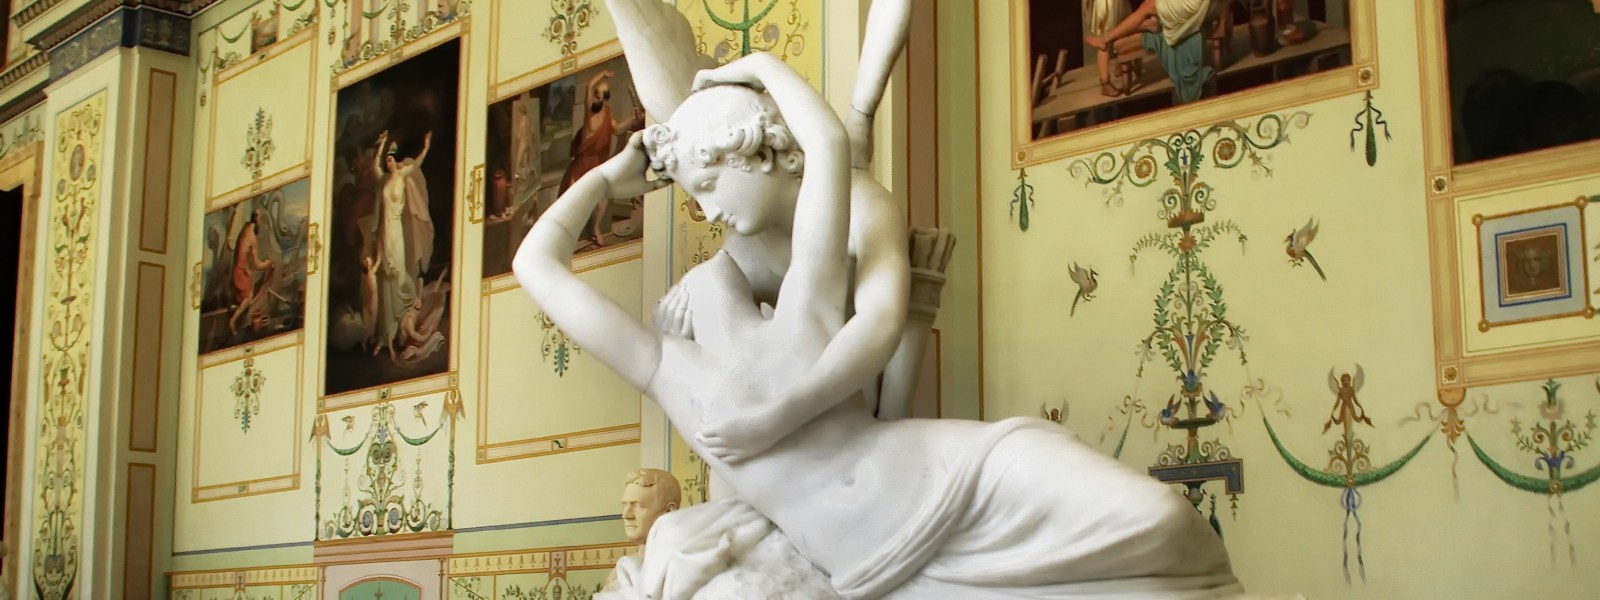 15 practical tips for your visit to the Hermitage